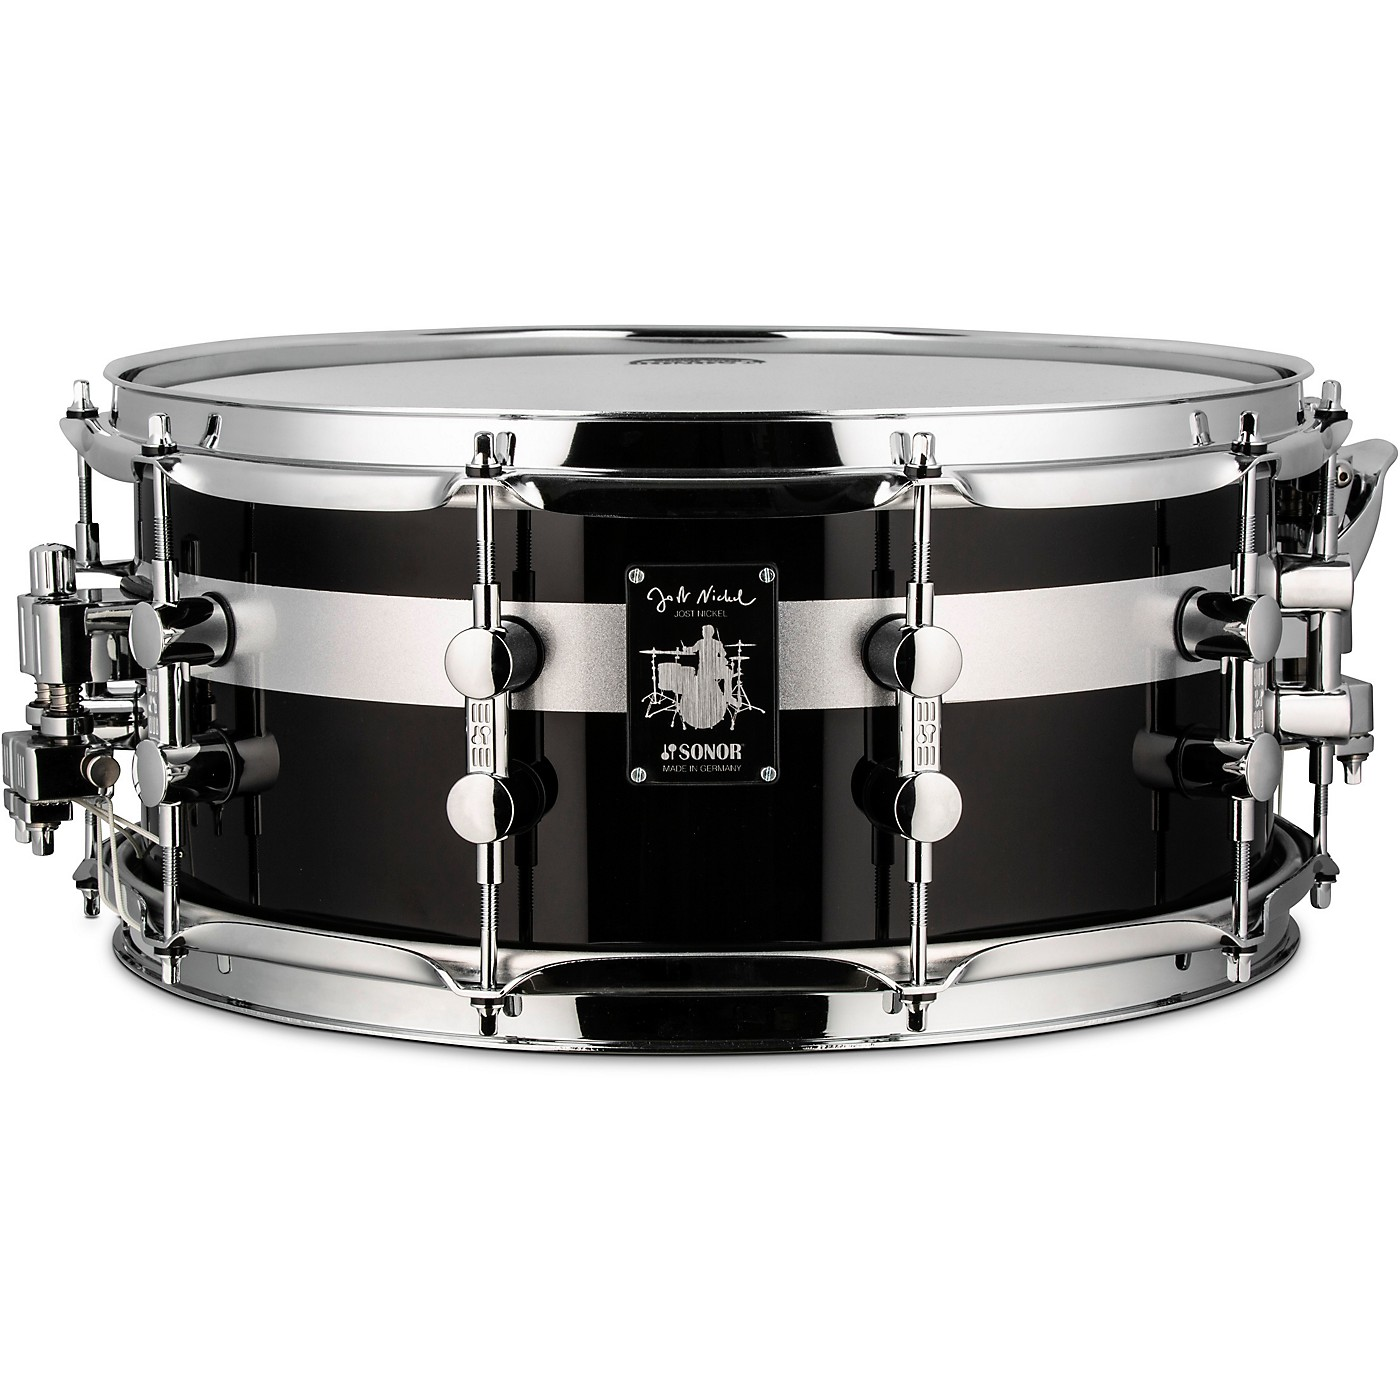 SONOR Jost Nickel Beech Snare Drum, Gloss Black with Stripe, 14 x 6.5 in. thumbnail